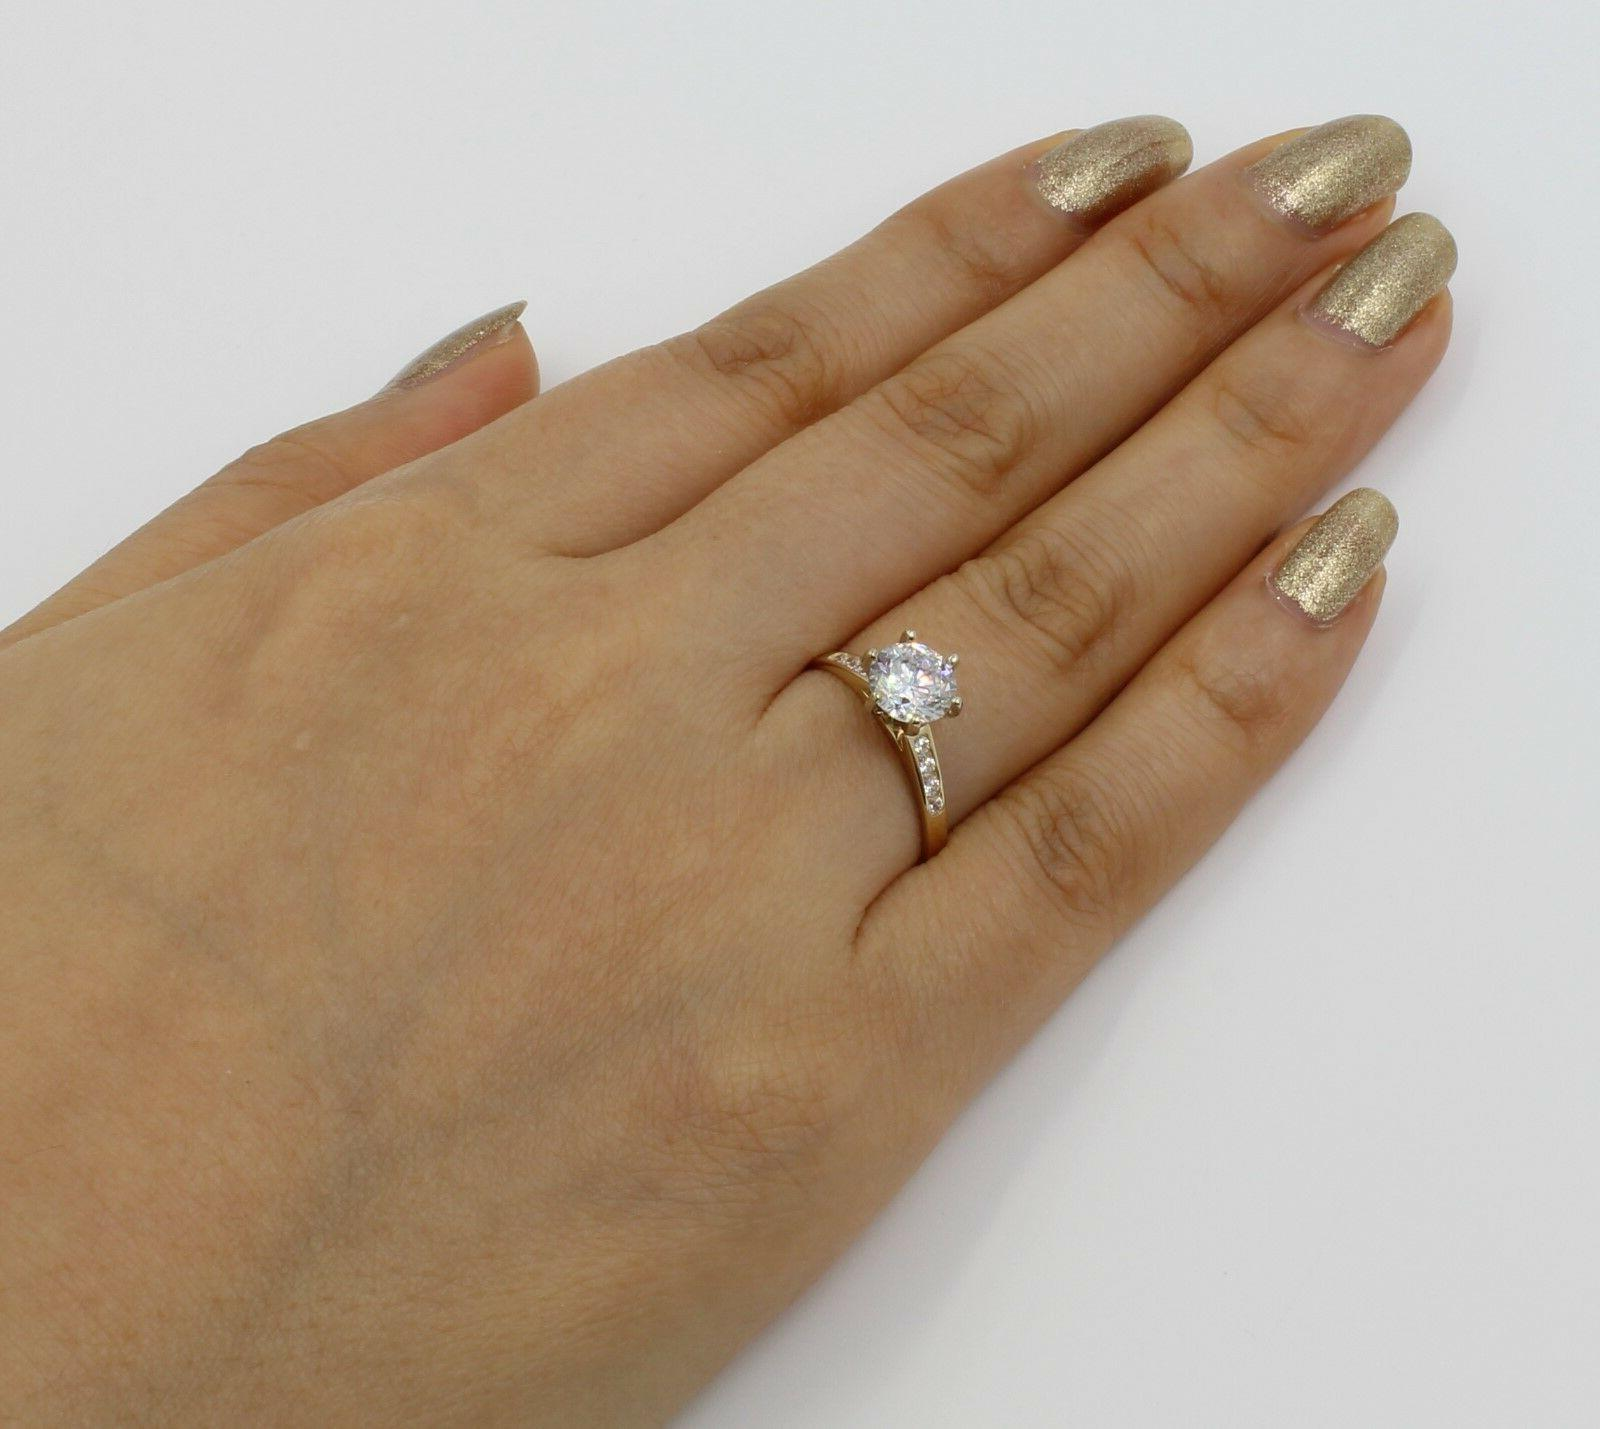 1.25 14K Gold Cathedral Round Engagement Wedding Propose Promise